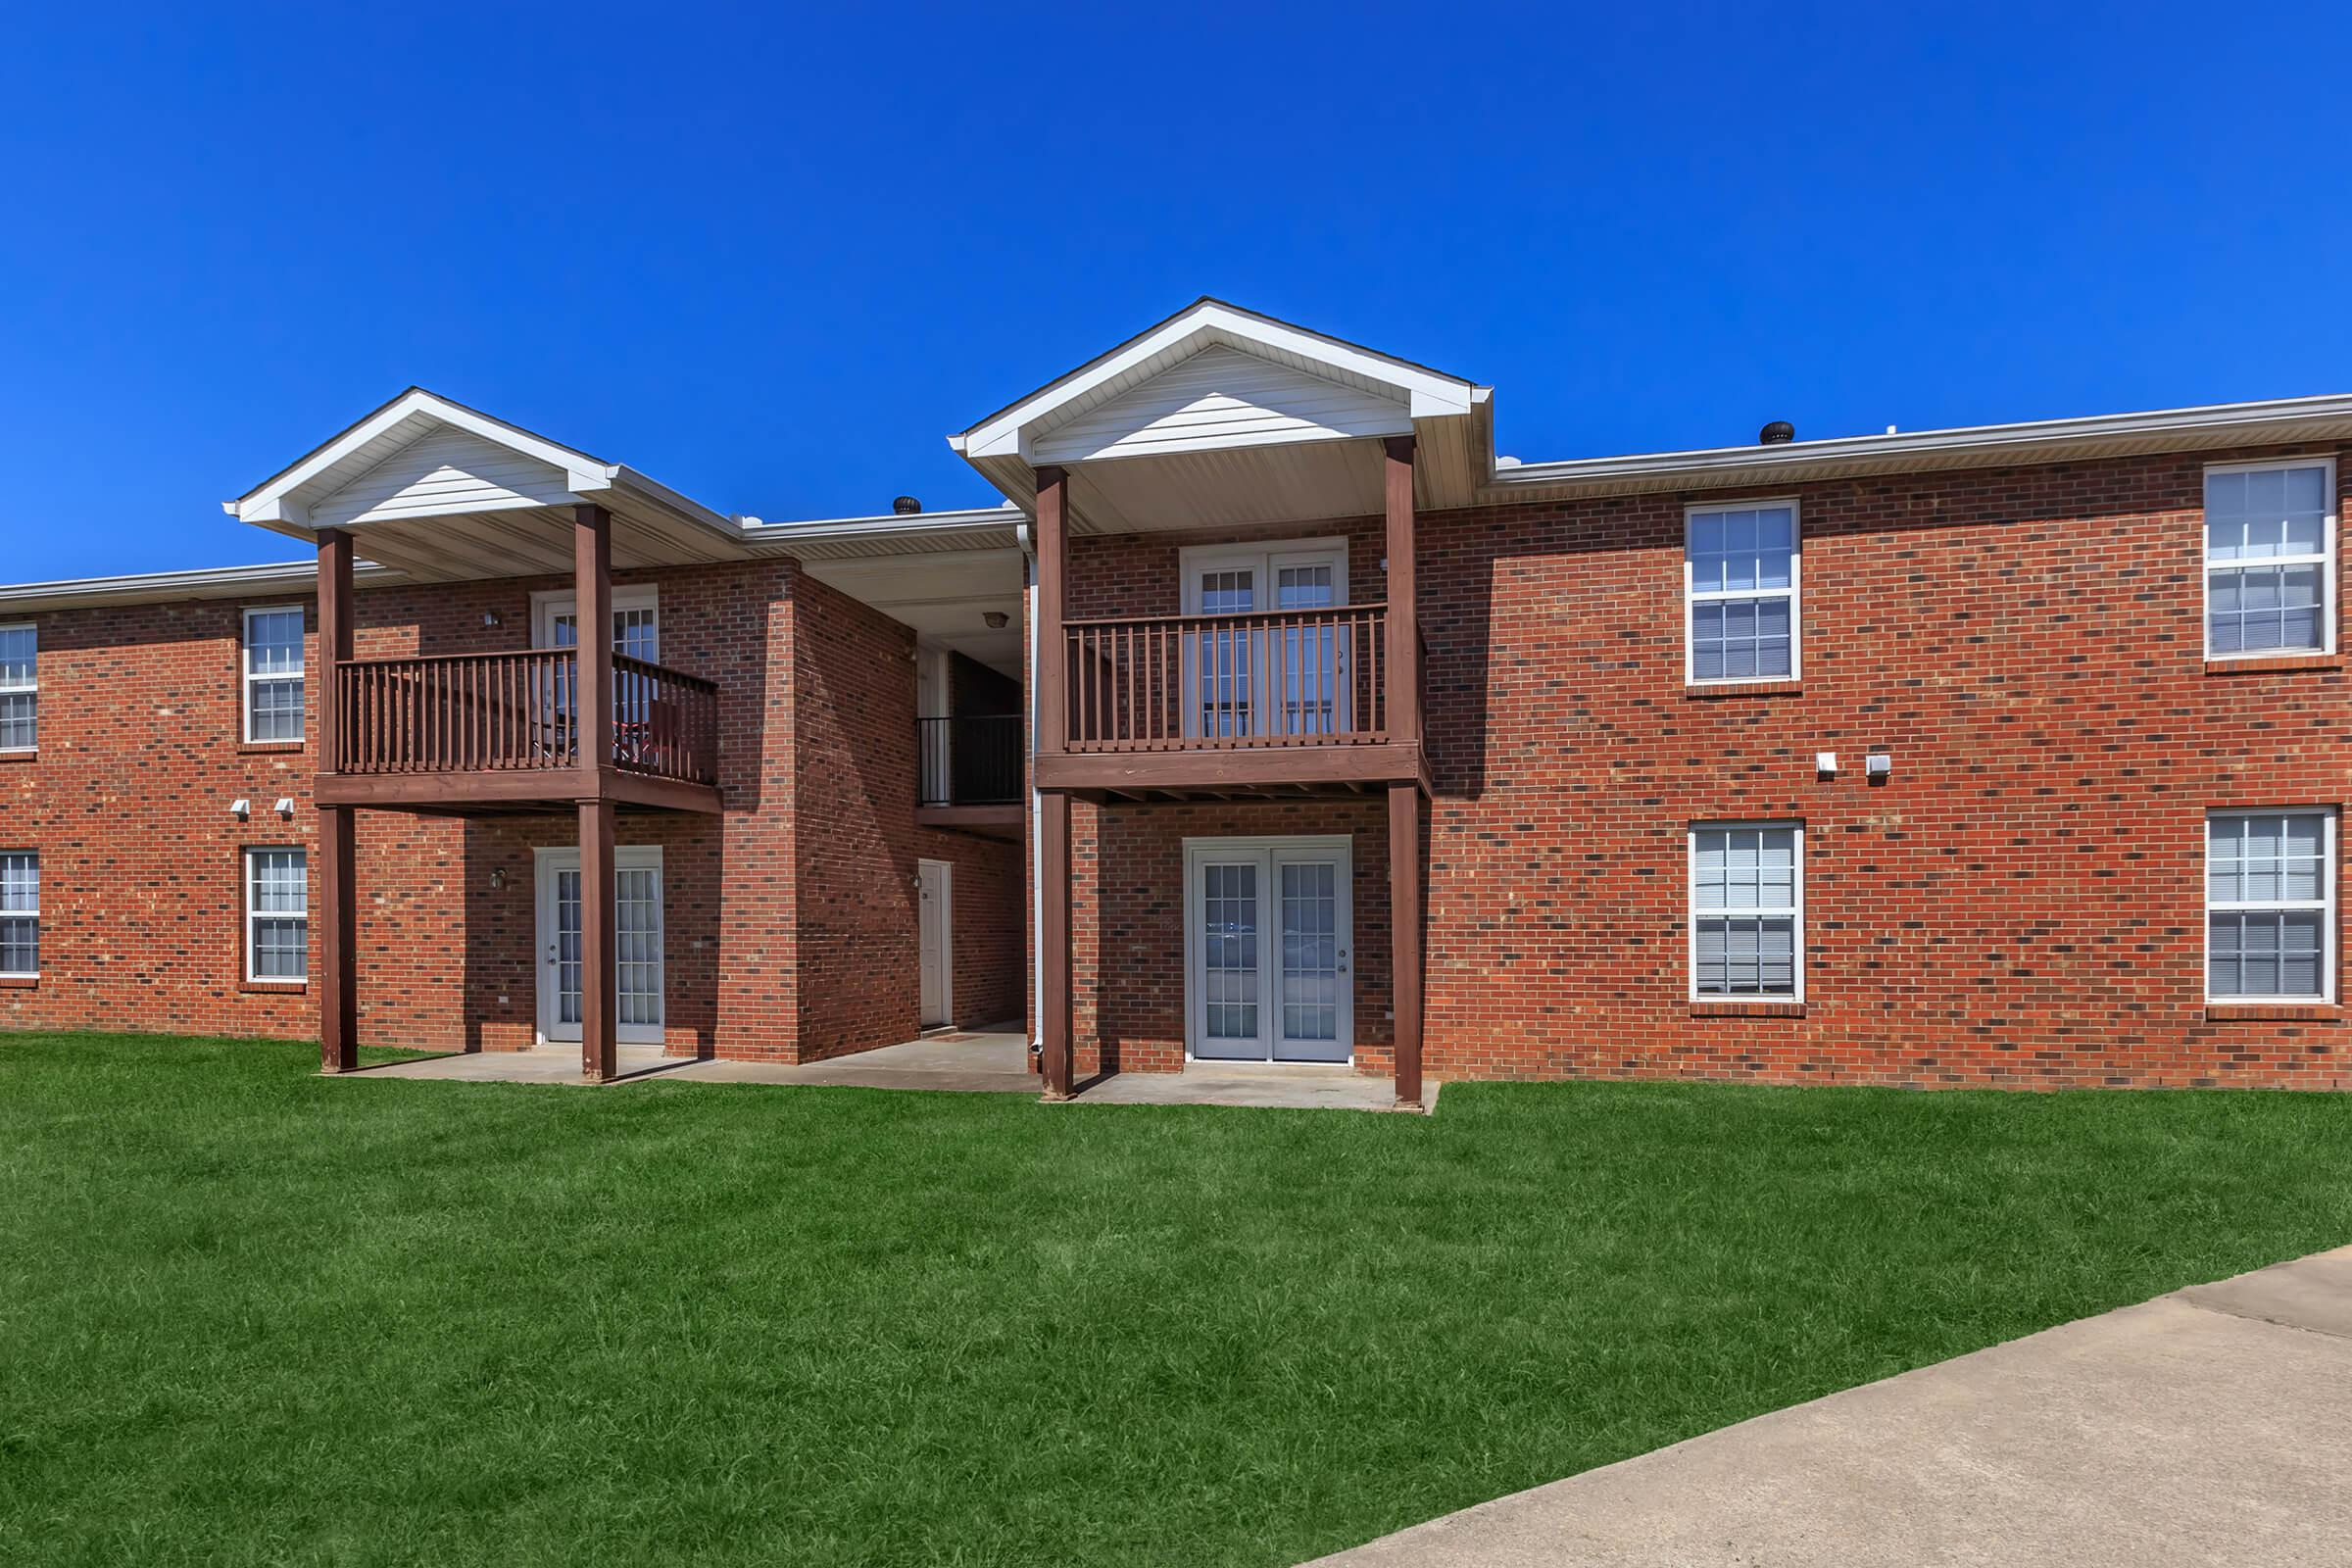 Beautifully landscaped community in Clarksville Tennessee